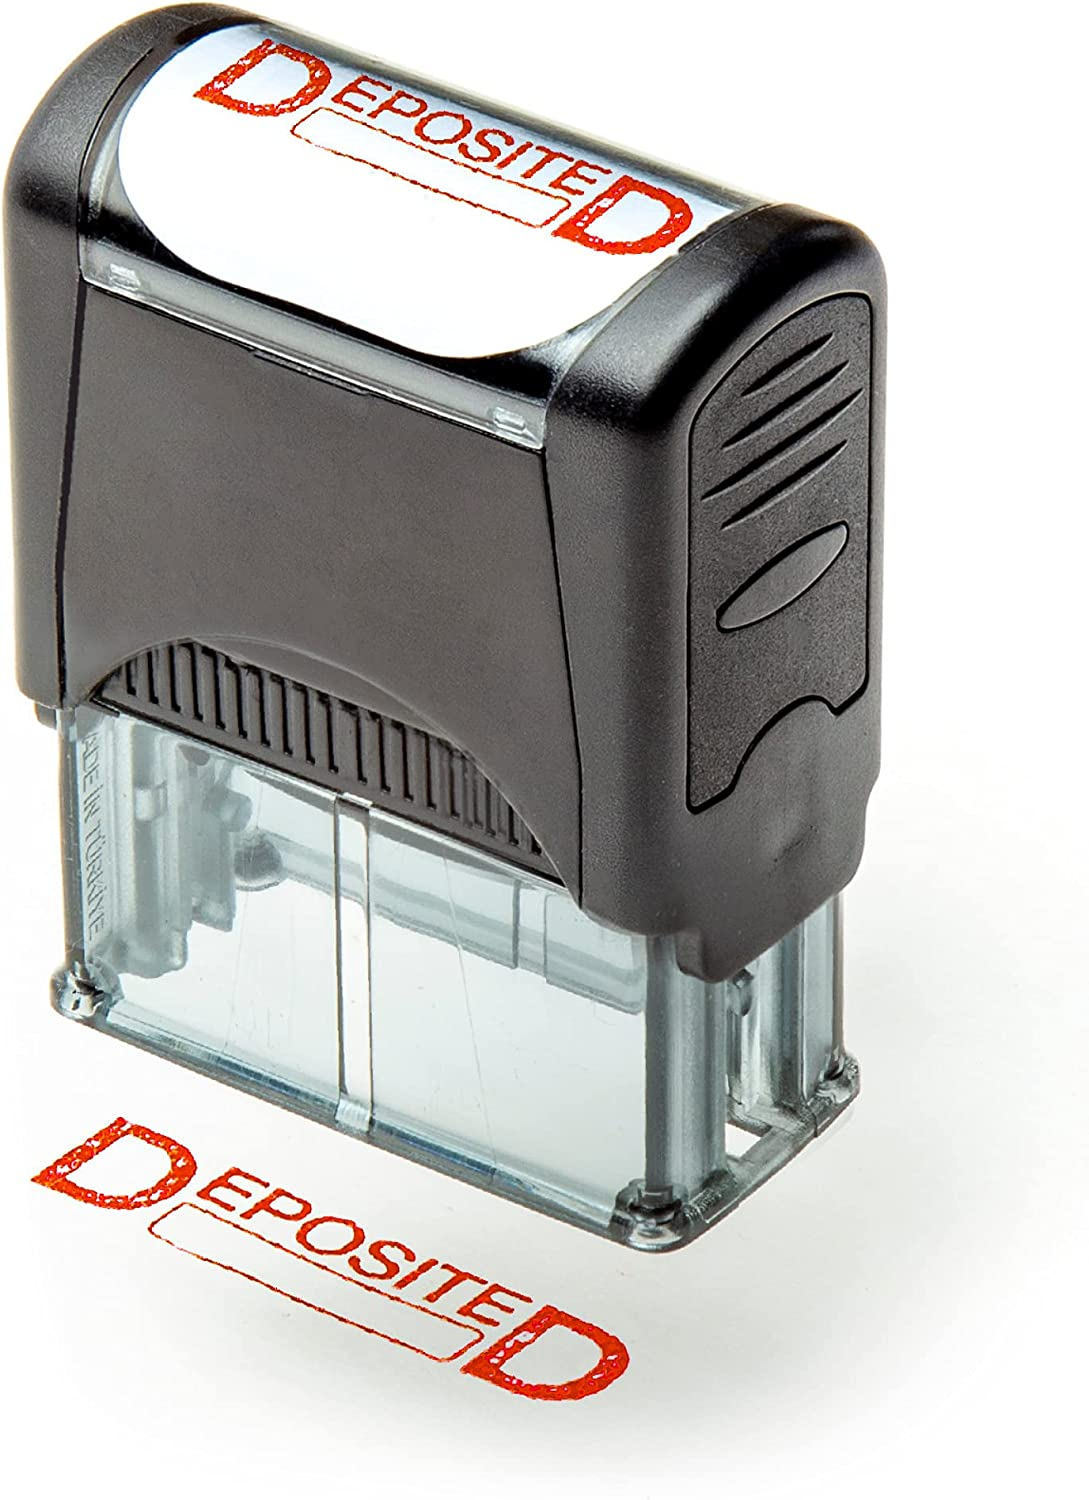 Self Inking Rubber Stamp Refillable Free shipping - Red Preinstalled DEPO Max 51% OFF Ink